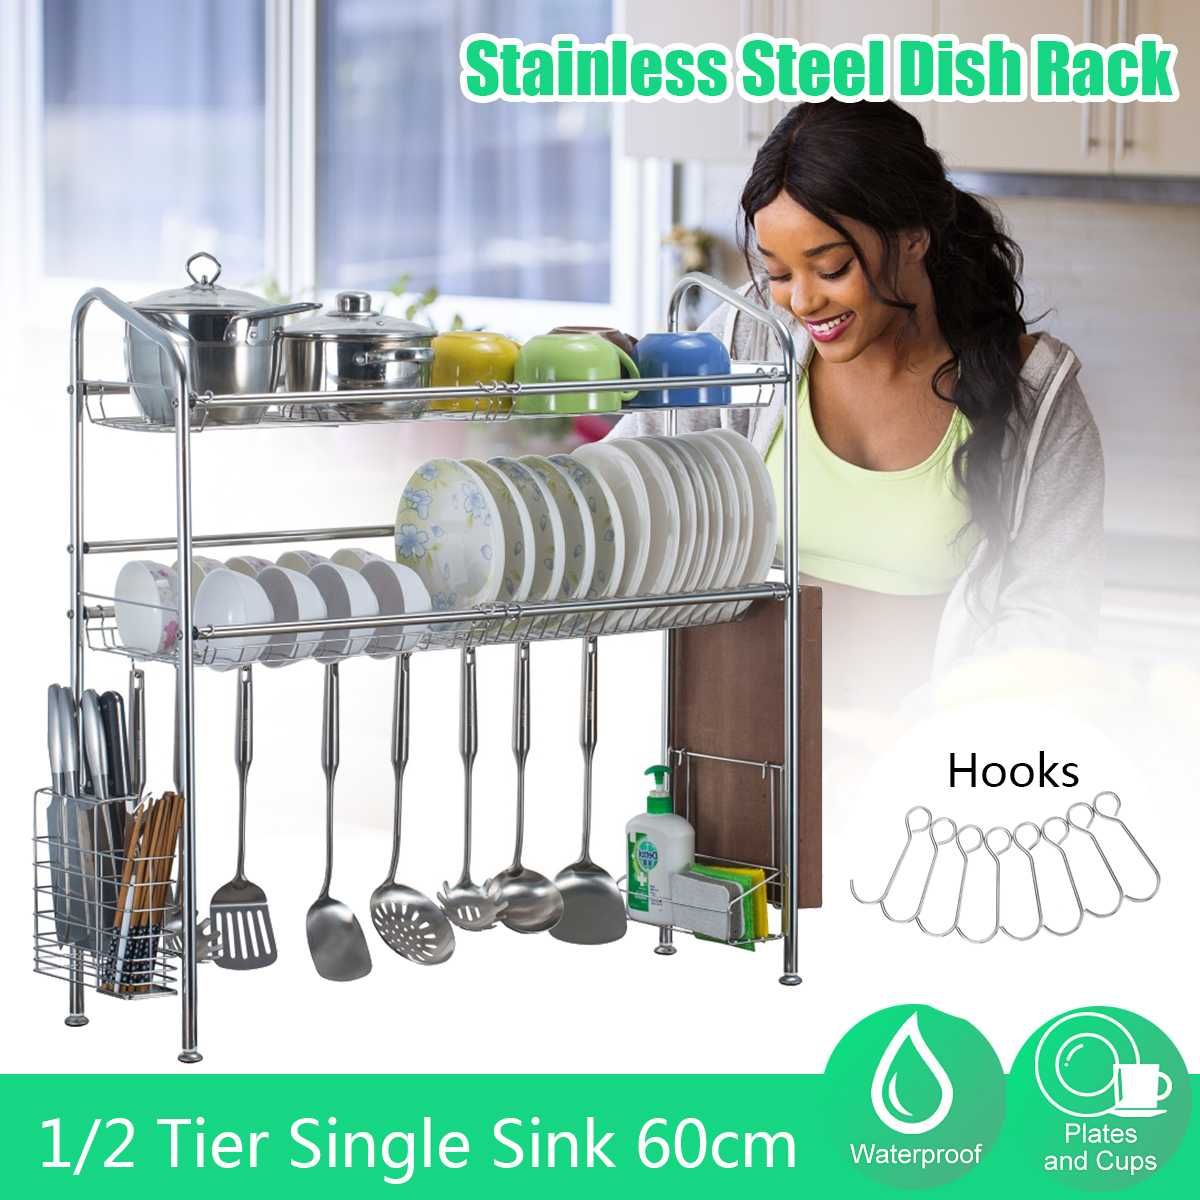 Layer Stainless Steel Kitchen Shelf Organizer Dishes Drying Rack Over Sink Drain Rack Kitchen Storage Countertop Utensils Holder Buy At The Price Of 74 80 In Aliexpress Com Imall Com